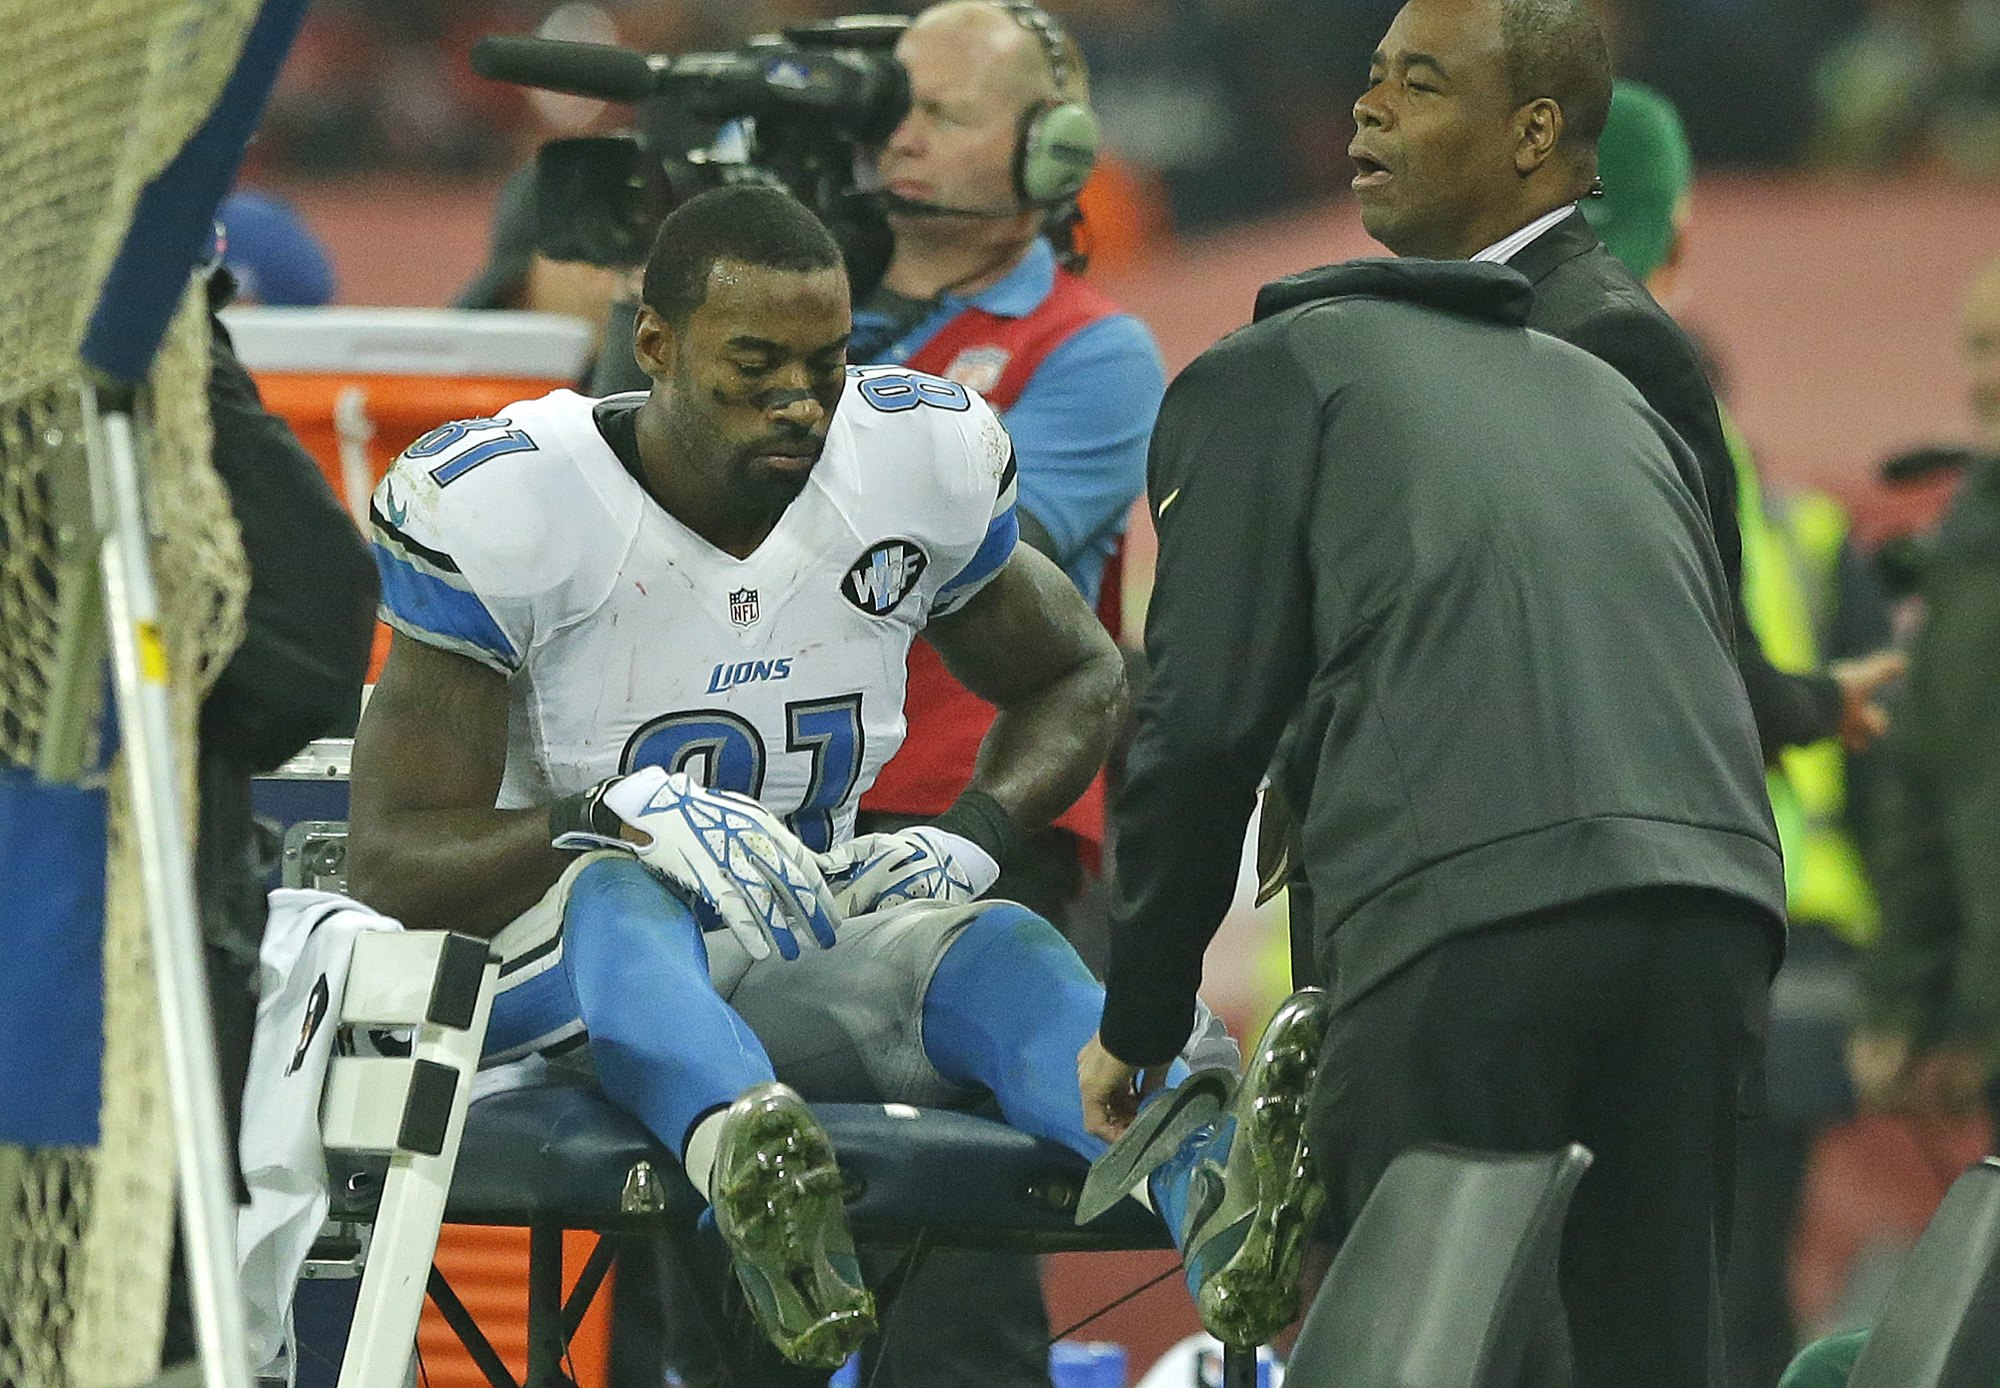 A medic checks the ankle of Detroit Lions' Calvin Johnson (81) on the sideline during the NFL football game between Detroit Lions and Kansas City Chiefs Wembley Stadium in London,  Sunday, Nov. 1, 2015. Chiefs won the match 45-10. (AP Photo/Matt Dunham)